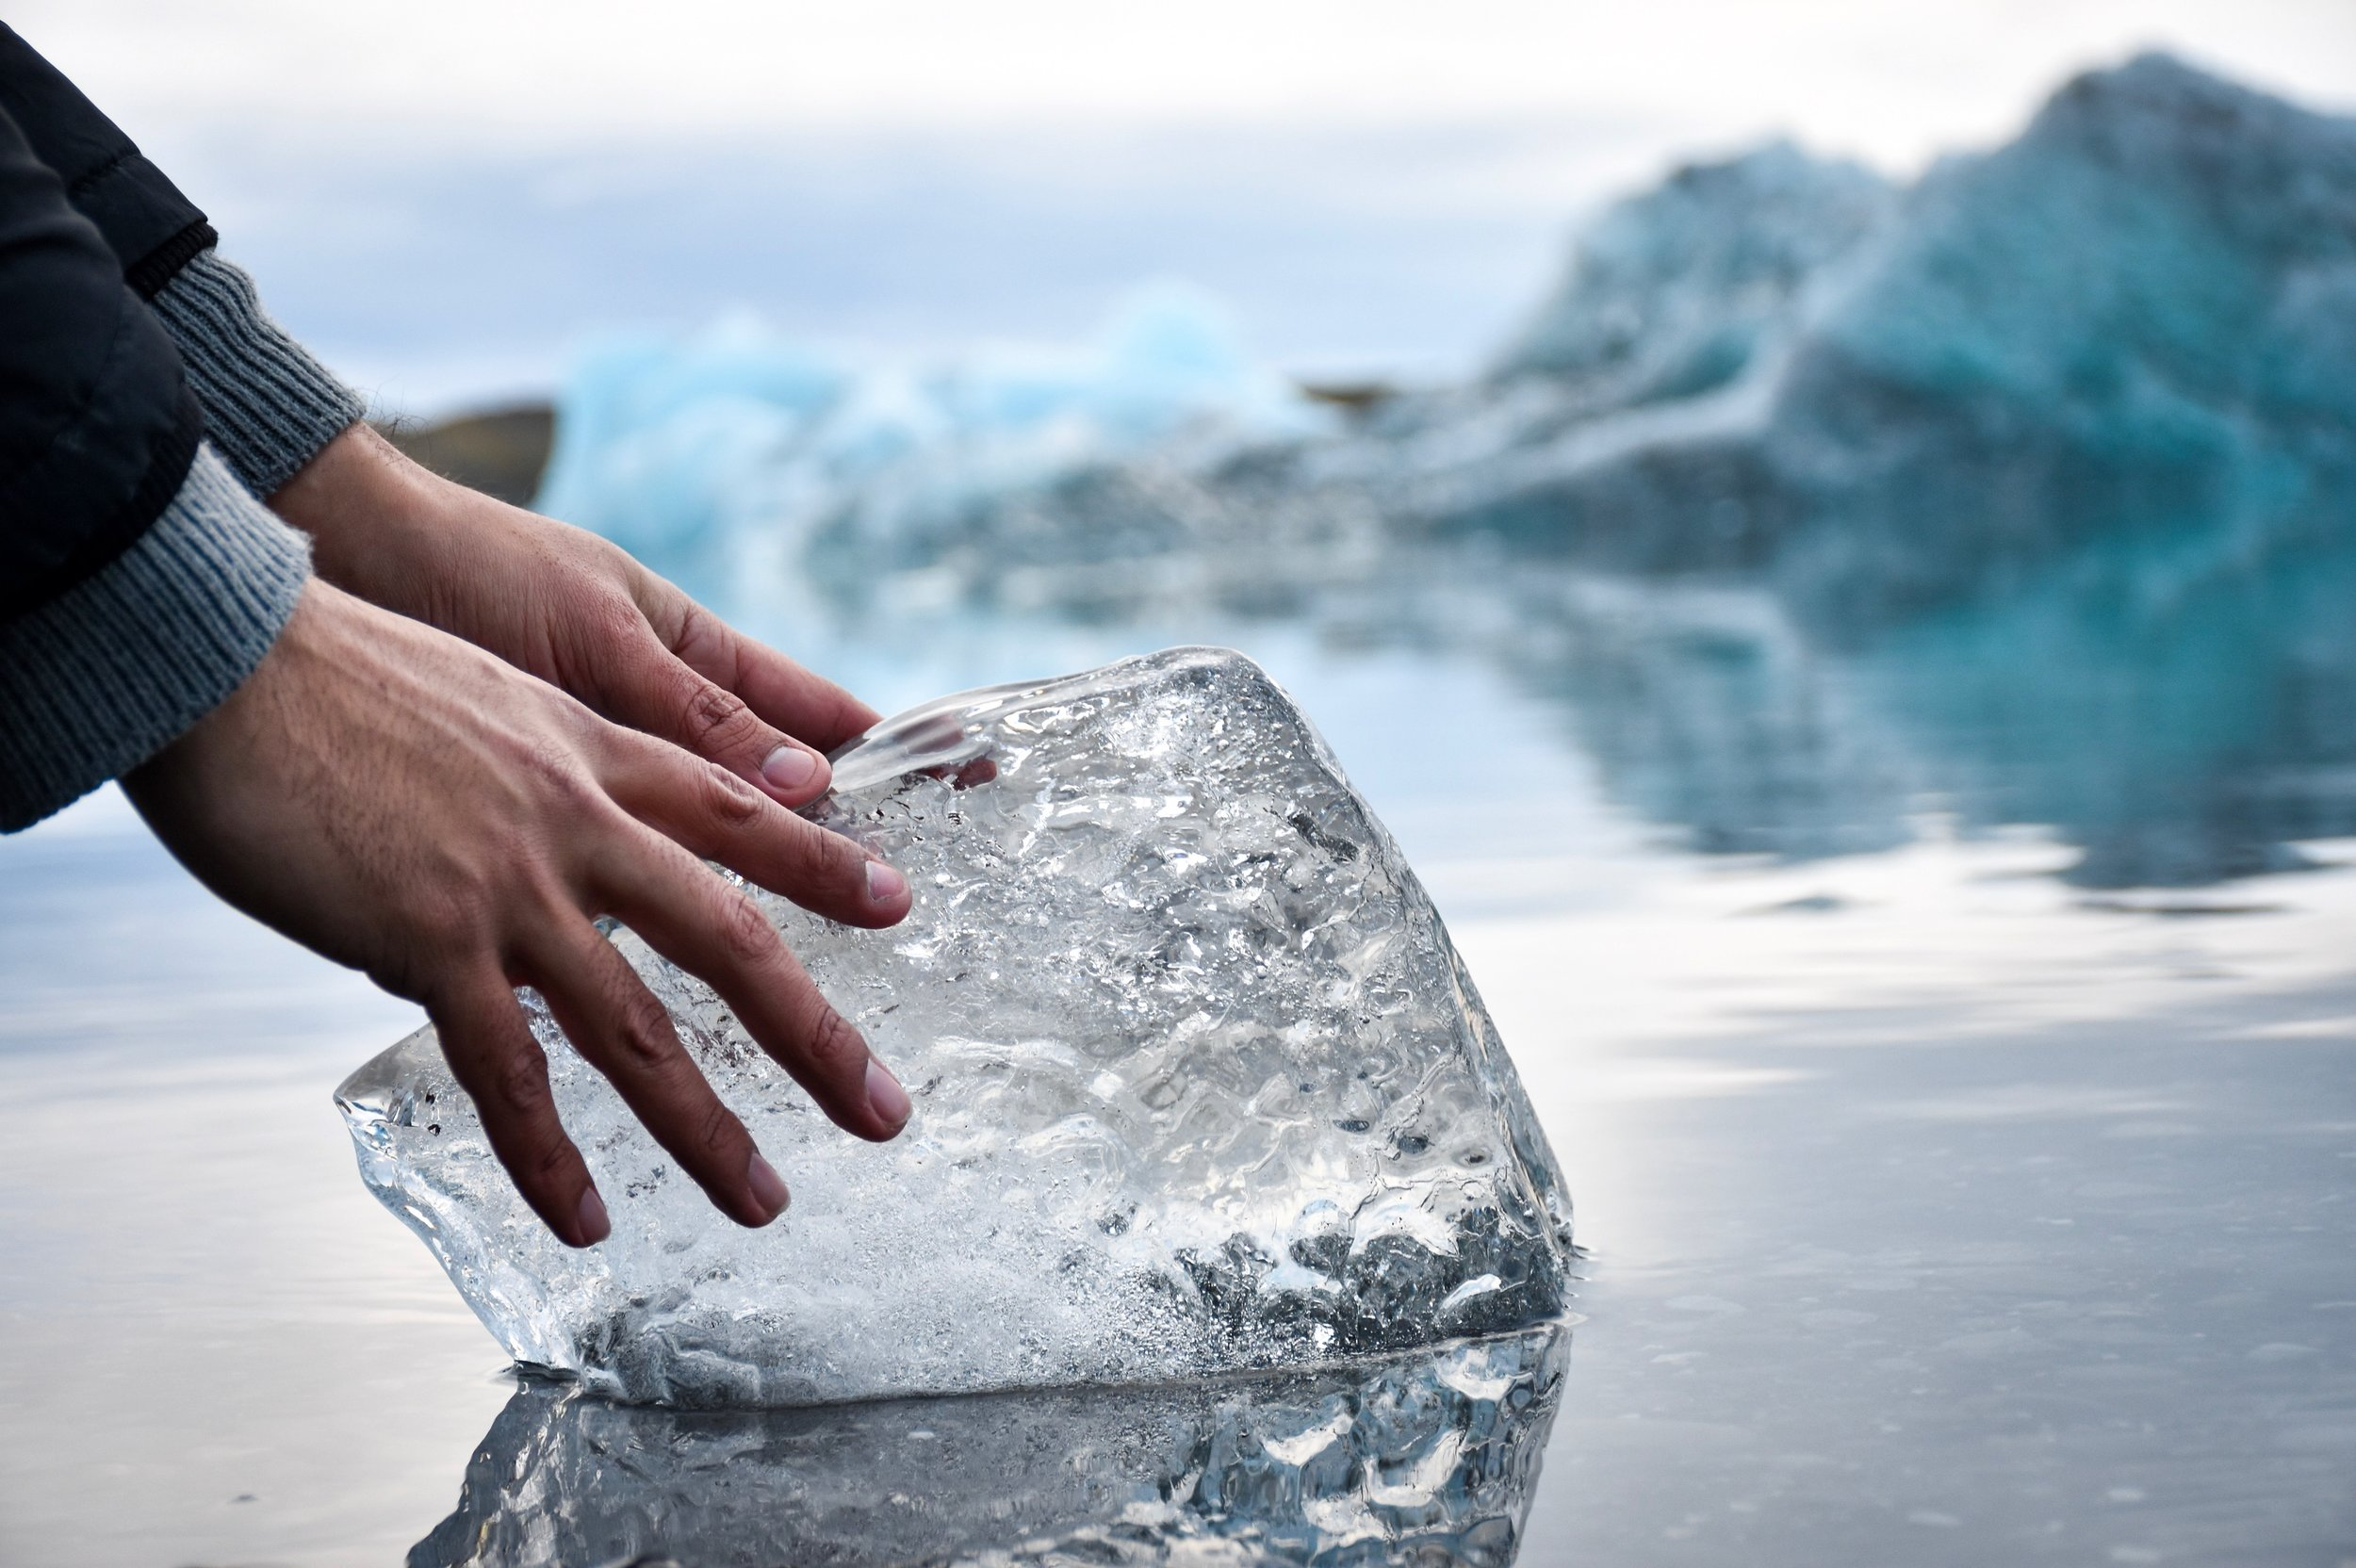 Hands on a block of ice